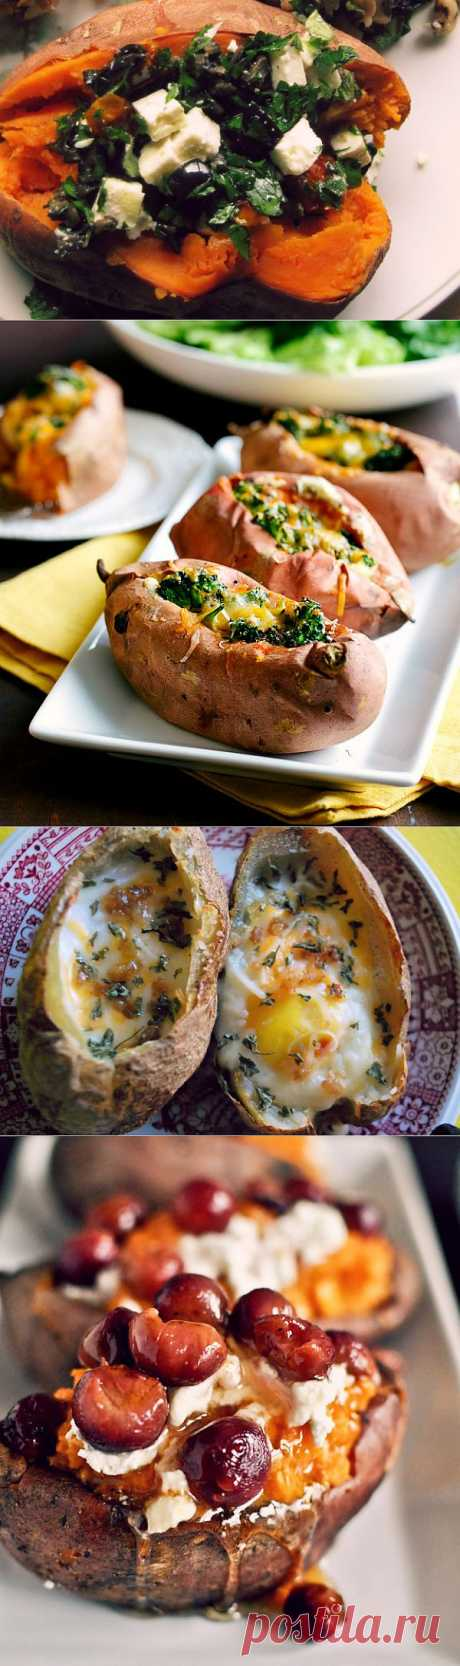 12 recipes of the baked potatoes